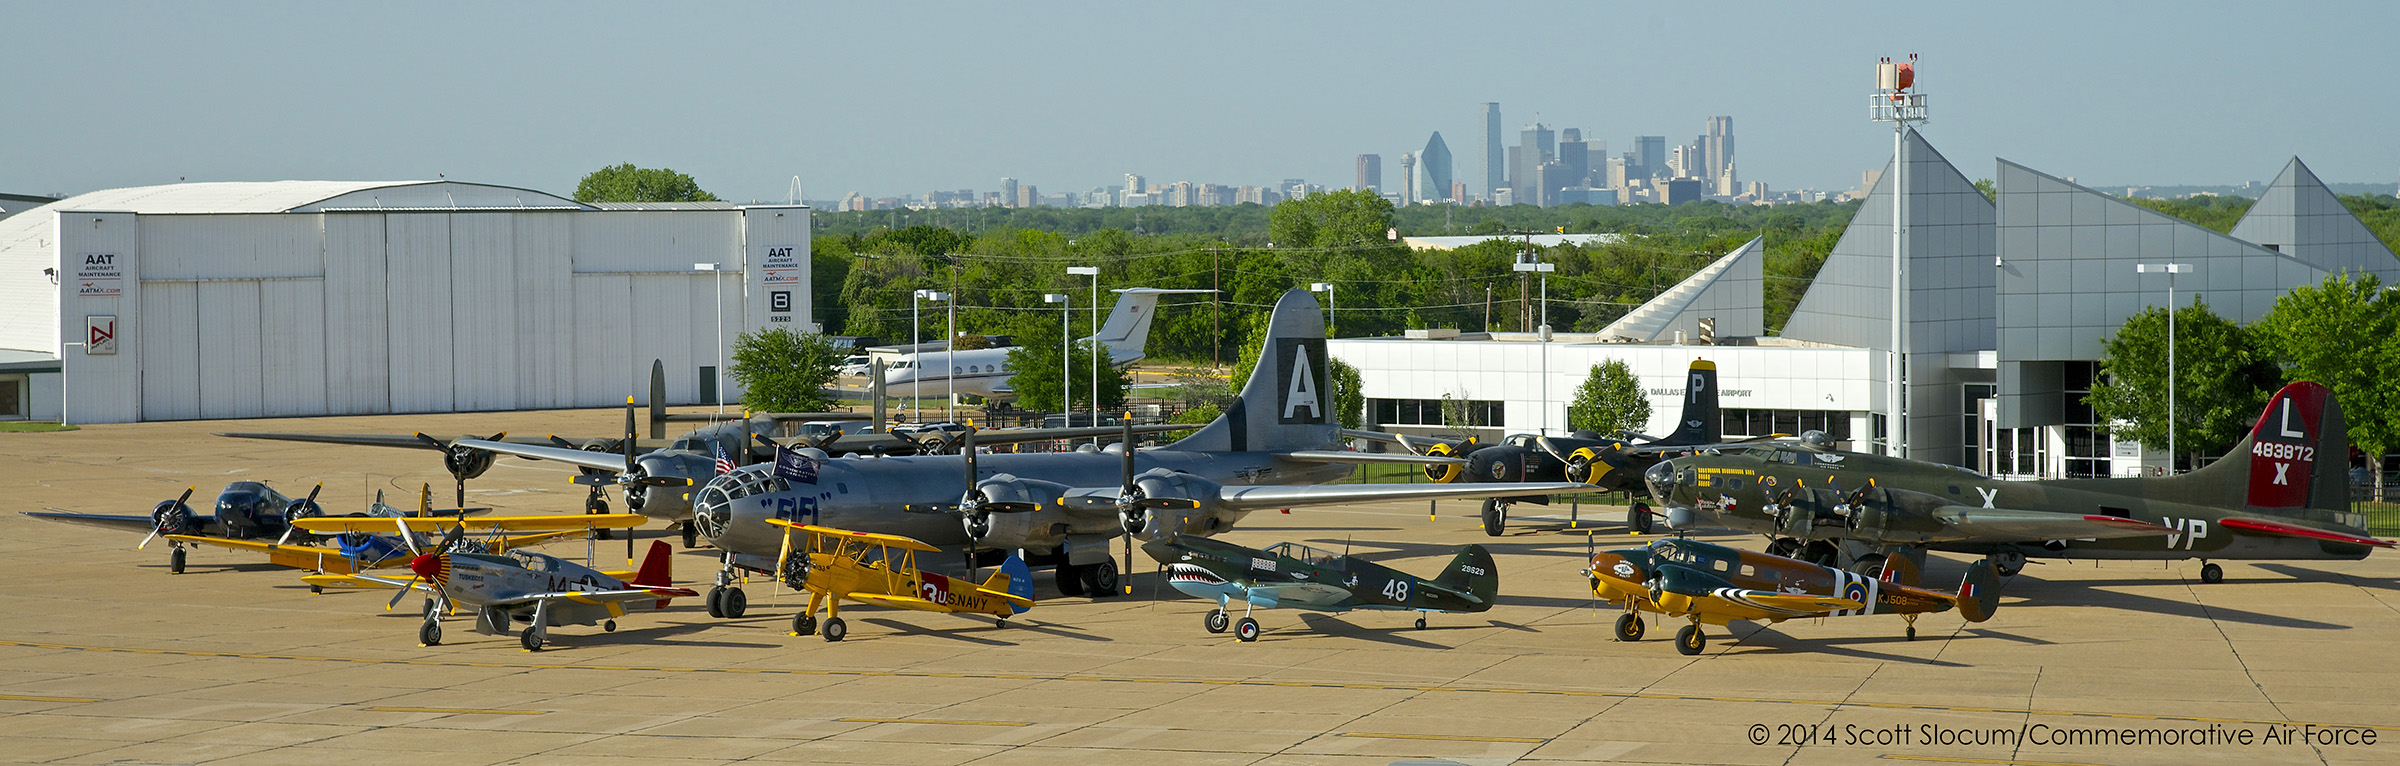 Several of the CAF aircraft at the National Air Base unveiling ceremony on Dallas Executive Airport (photo by Scott Slocum via CAF)